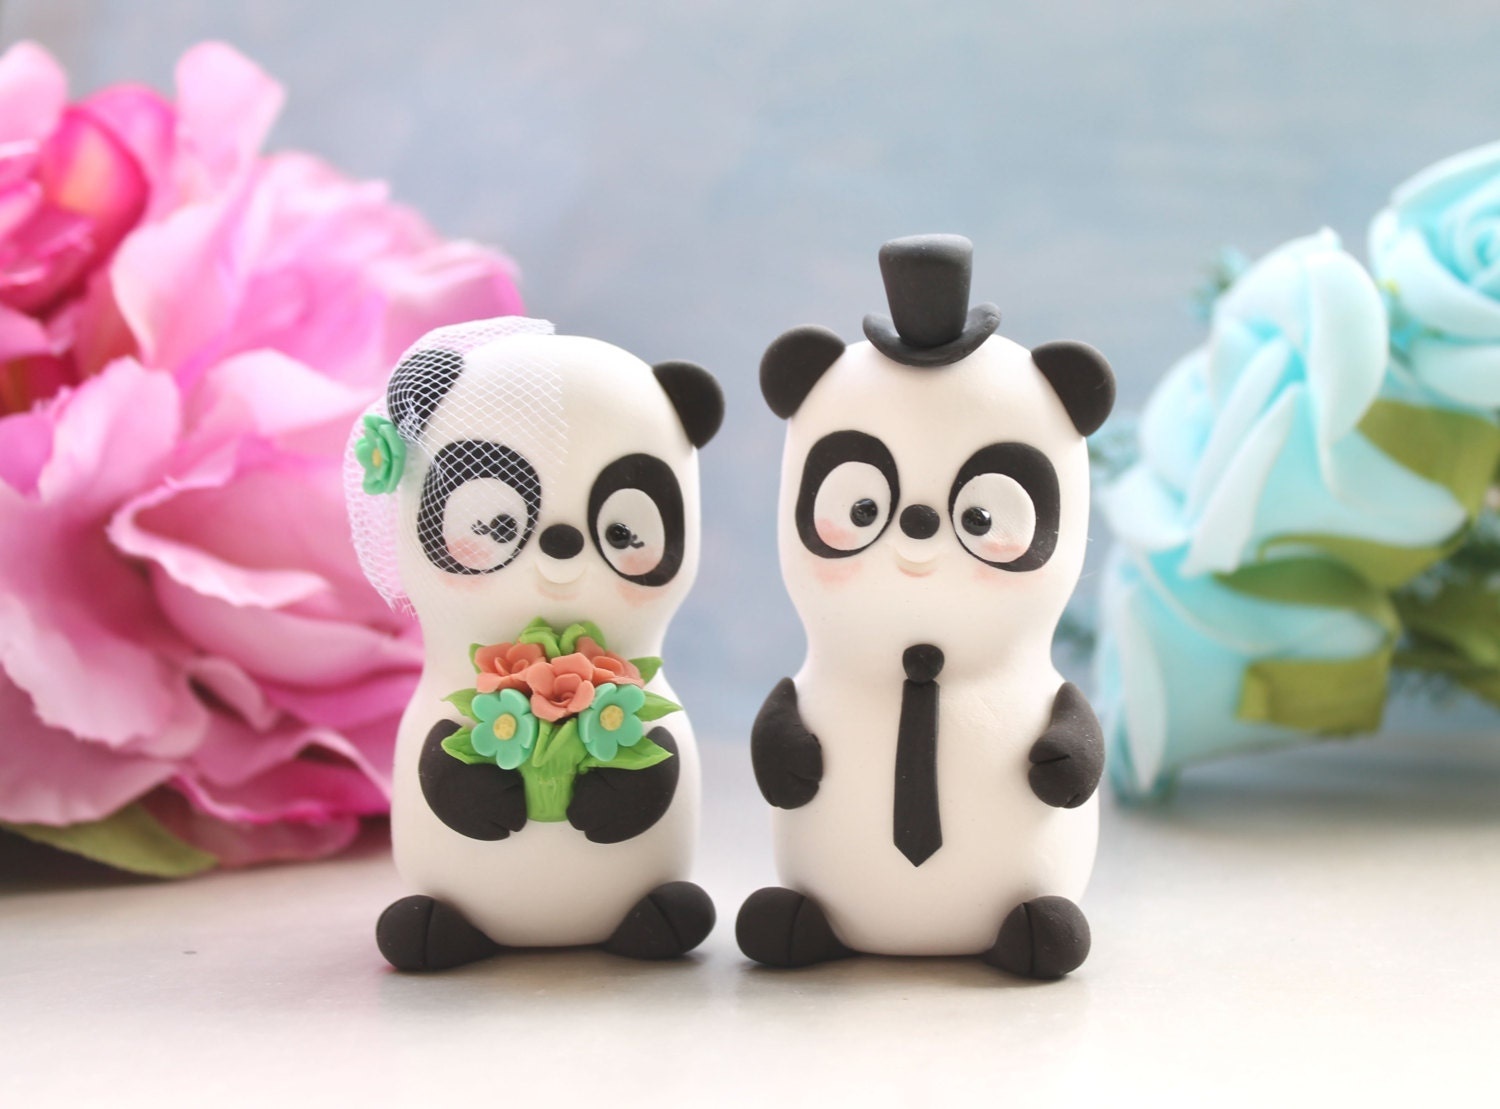 Panda unique wedding cake toppers bride and groom figurines